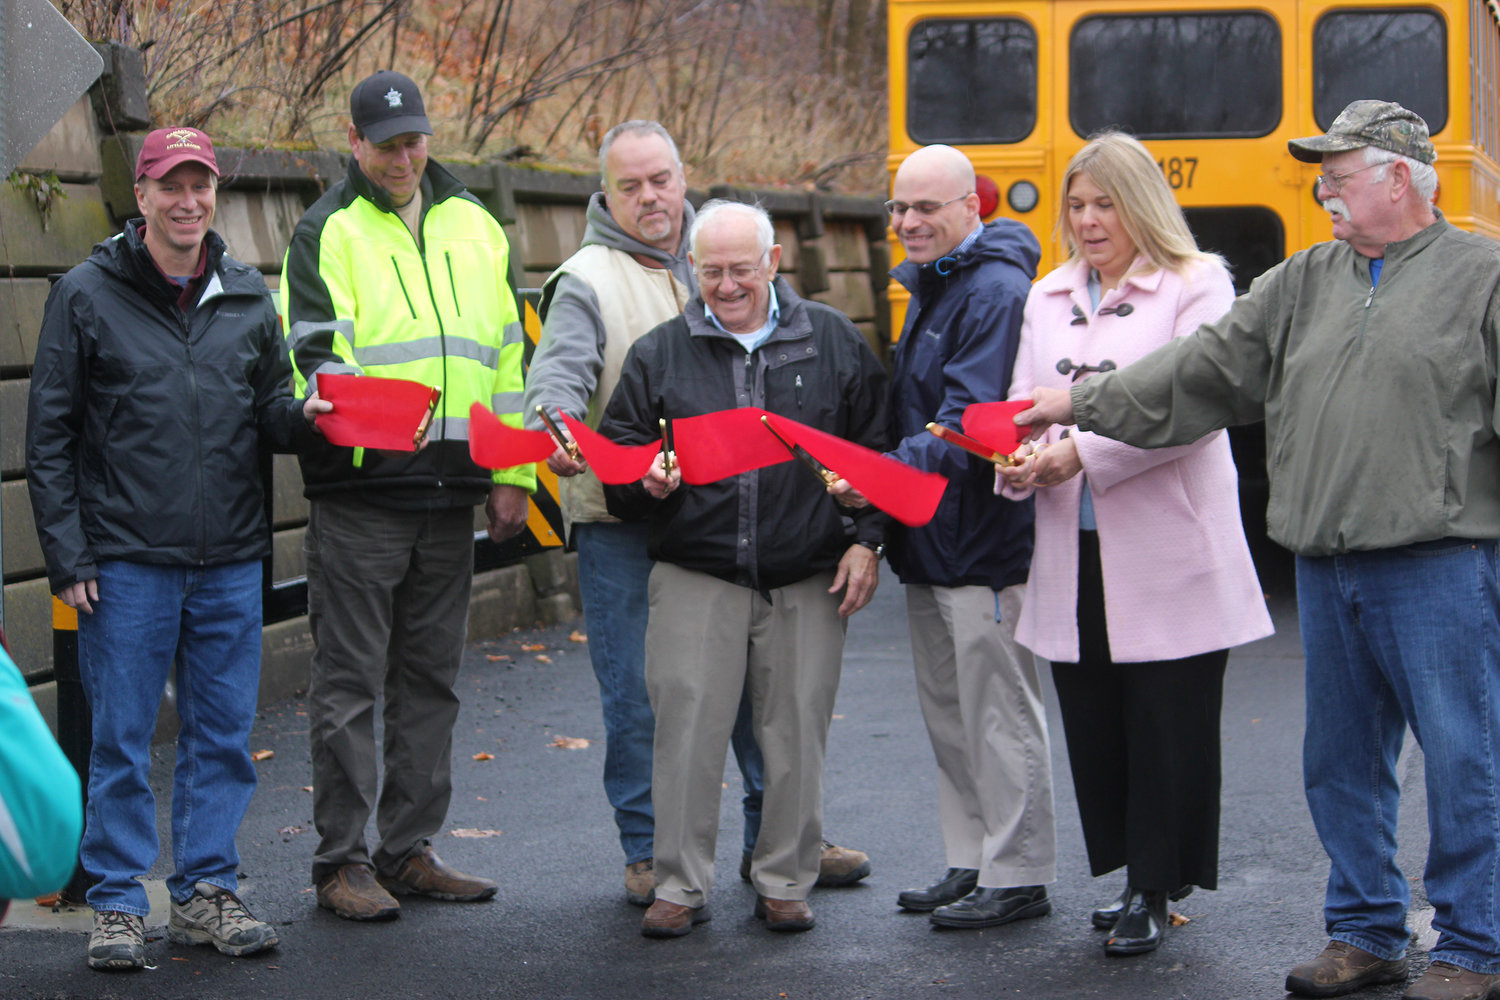 OFFICIALLY OPEN — Local and county officials cut the ribbon, officially opening the Lenox Rail Trail on Thursday, Nov. 22. Officials hailed the trail's official opening, after years of hard work.